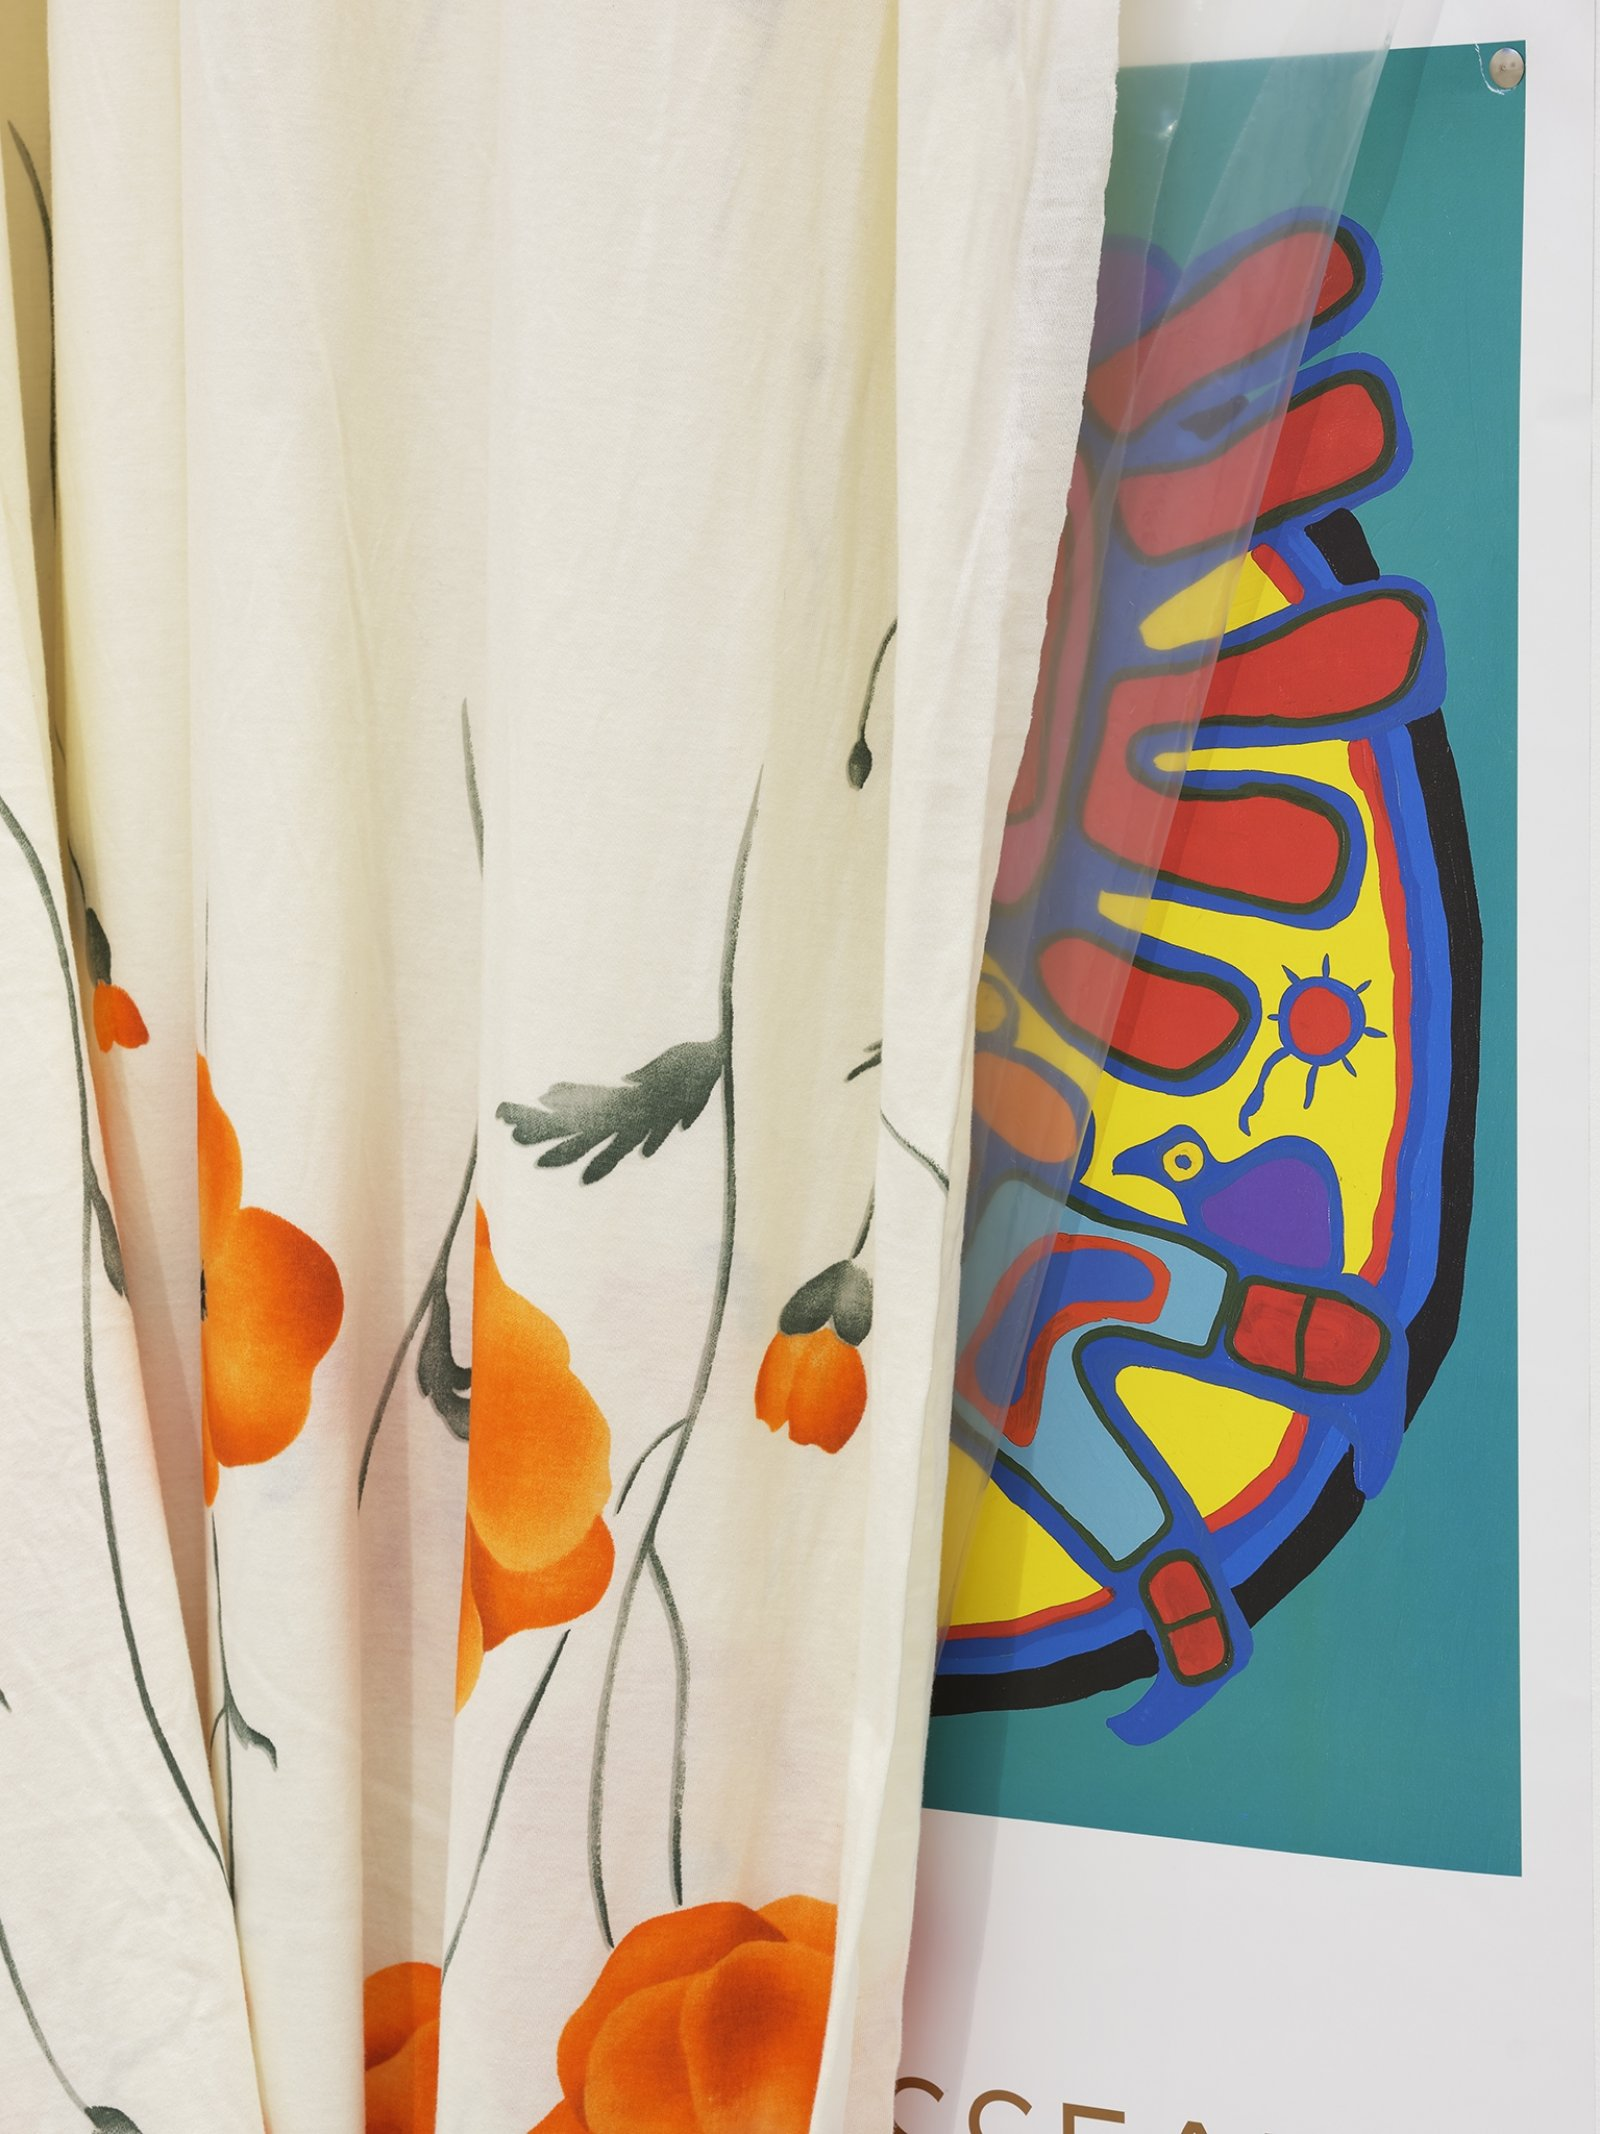 Duane Linklater, body (detail), 2016, plastic sheeting, cotton cloth, nails, thumb tacks, paper poster from National Gallery of Canada, 124 x 35 x 15 in. (315 x 89 x 38 cm)